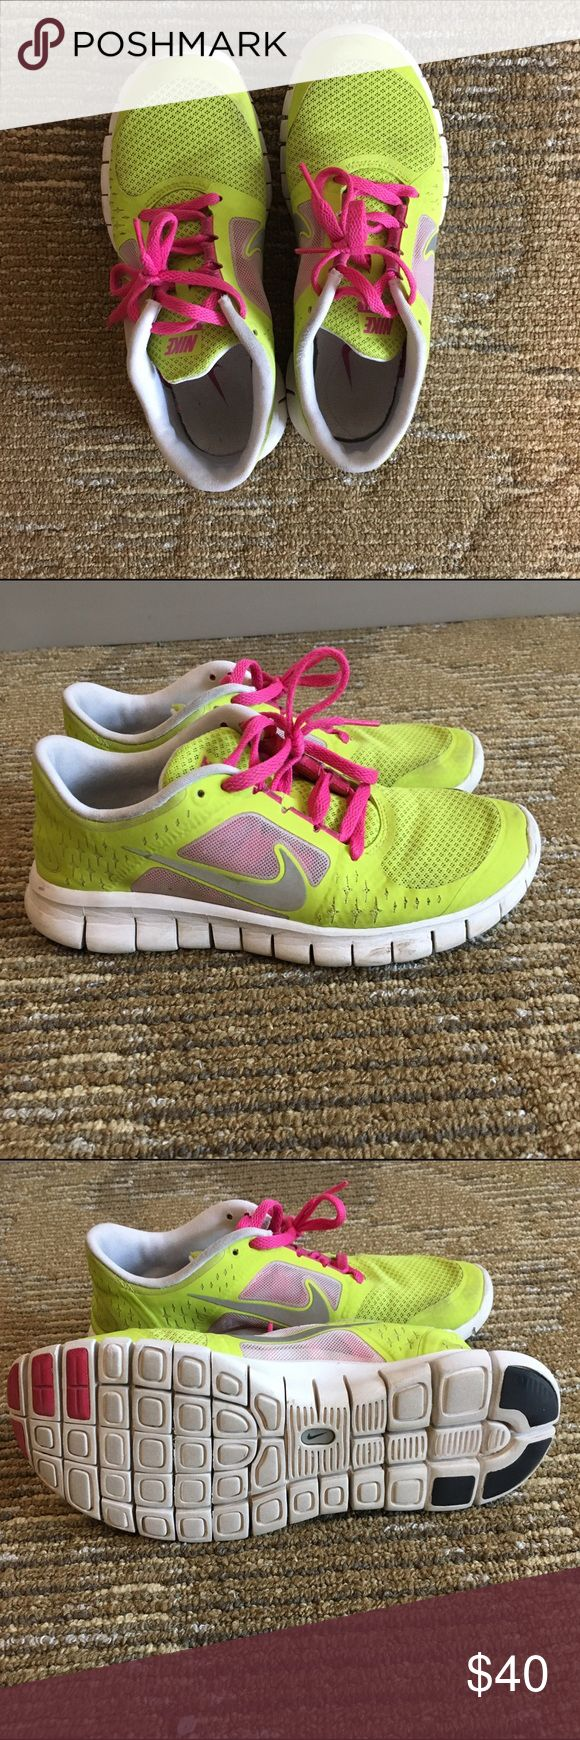 Nike free run 3.0. BIG KID SIZE 5.5/WOMEN SIZE 7 Cute nikes to wear at the gym, to go running, or for fashion purposes! Lime green m with bright pink laces. Worn a decent amount but still in good shape!! These are kids size 5.5 equivalent to women size 7! Nike Shoes Sneakers